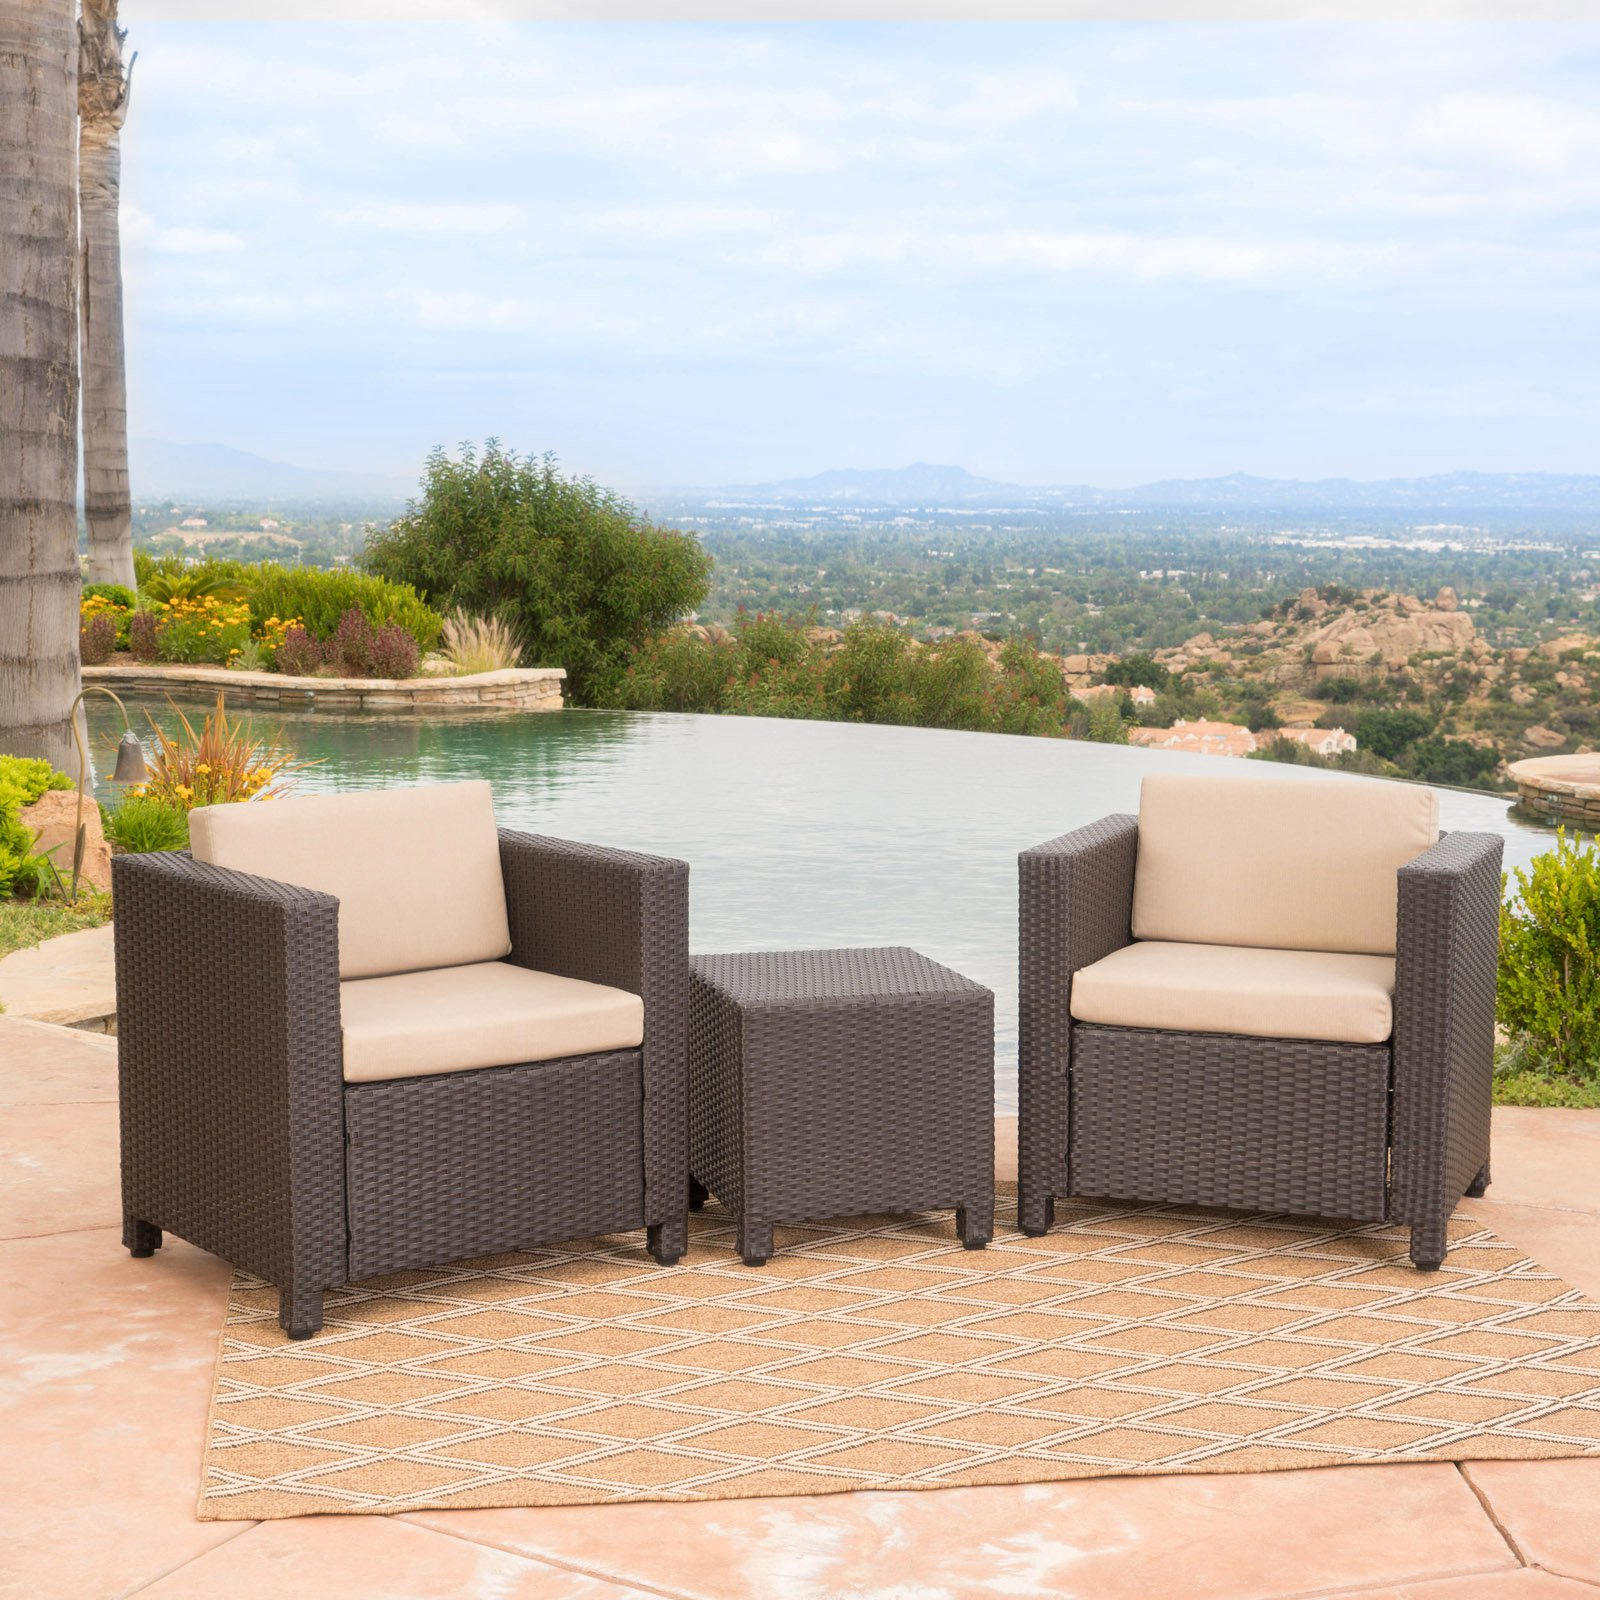 Puerta Outdoor Club Chair Set with Matching Side Table